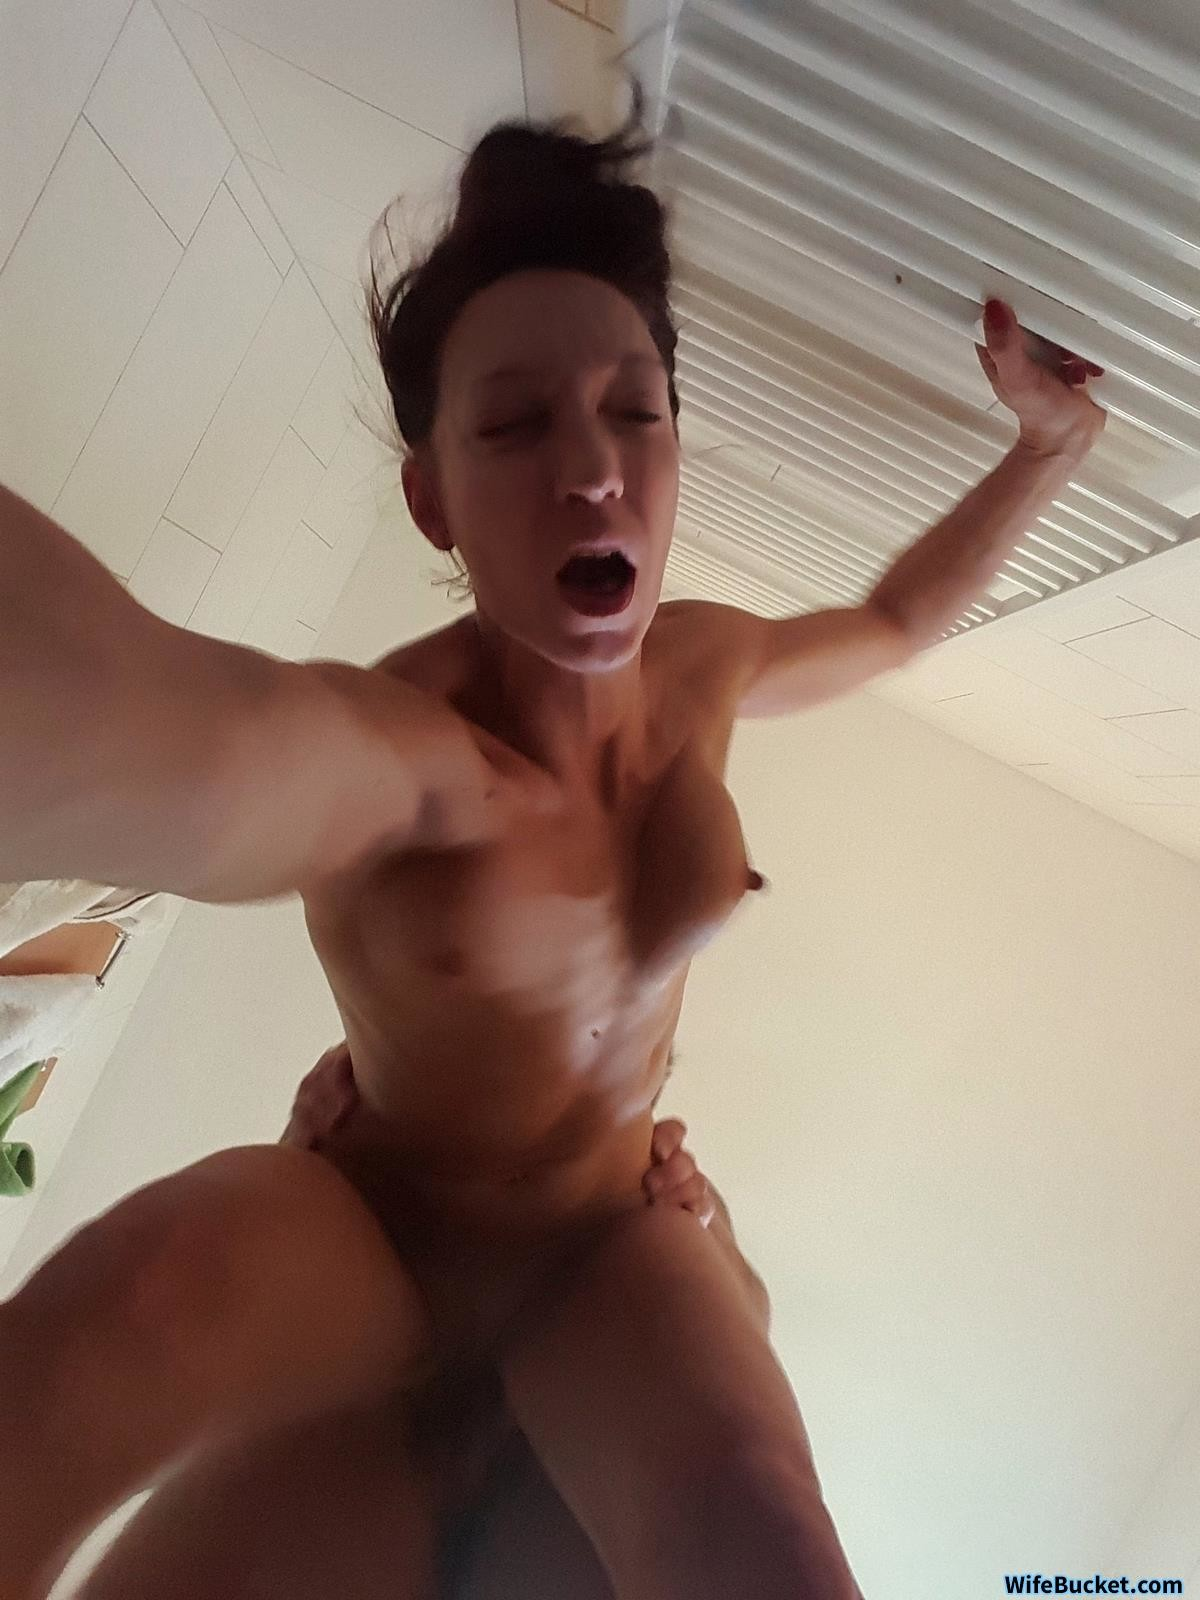 Wifebucket Milf Bimbo Addicted To Sexting-1477